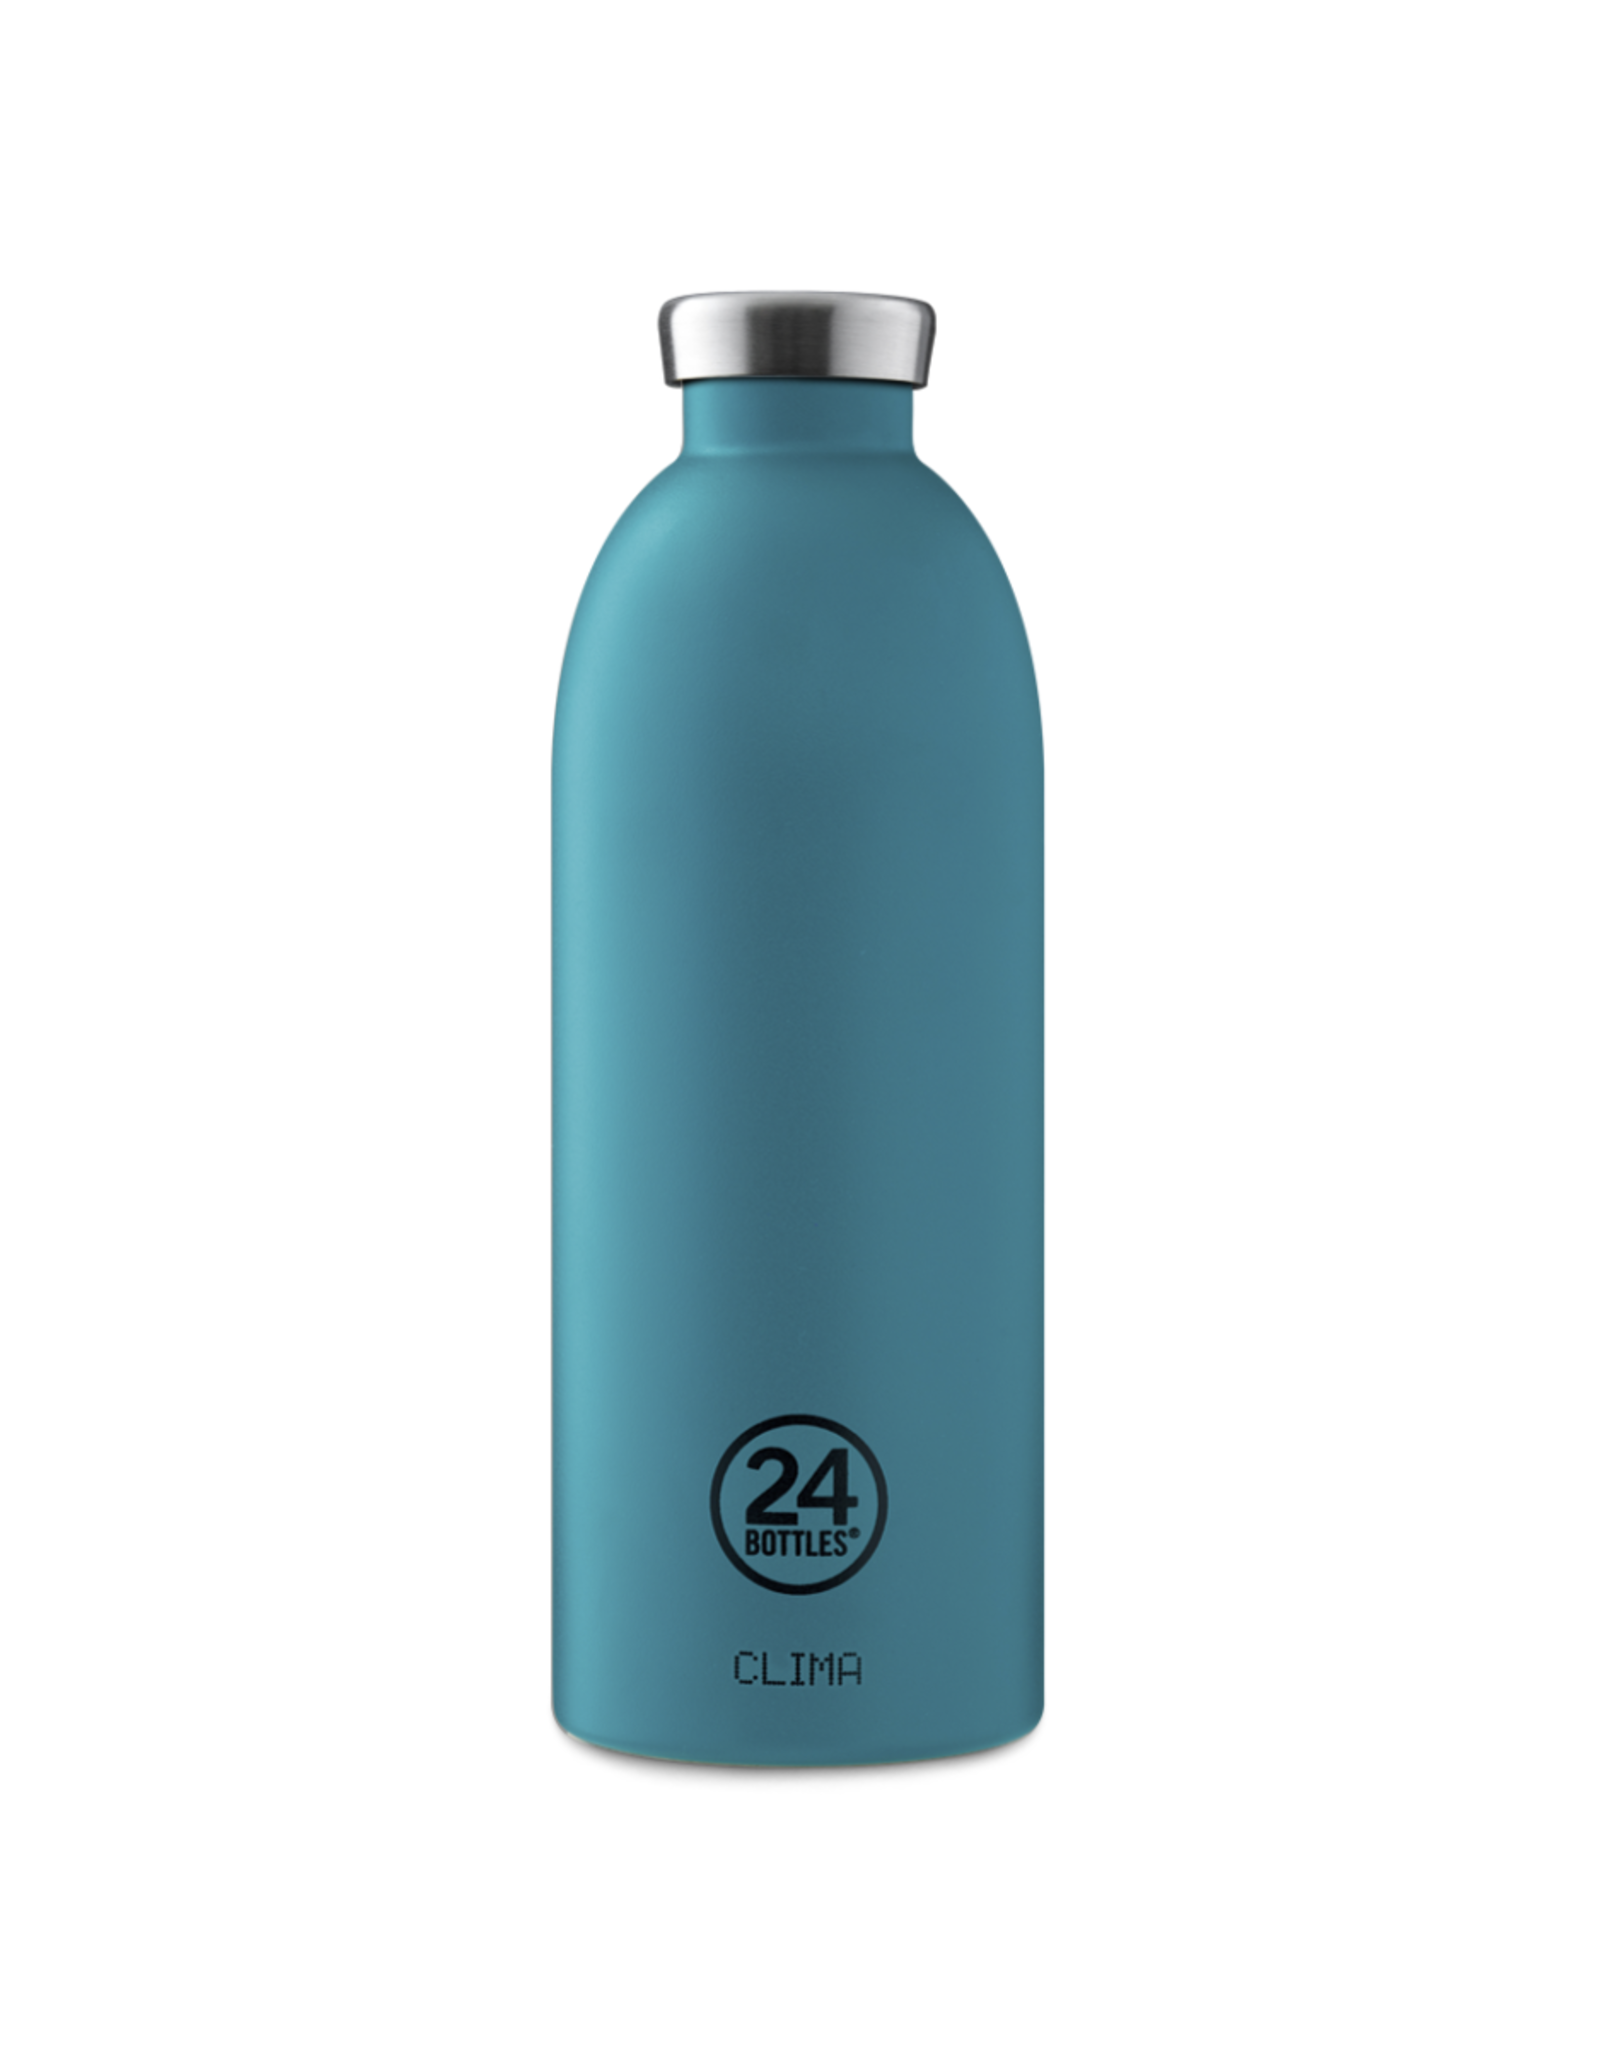 24 bottles Clima bottle - Atlantic bay 850 ml